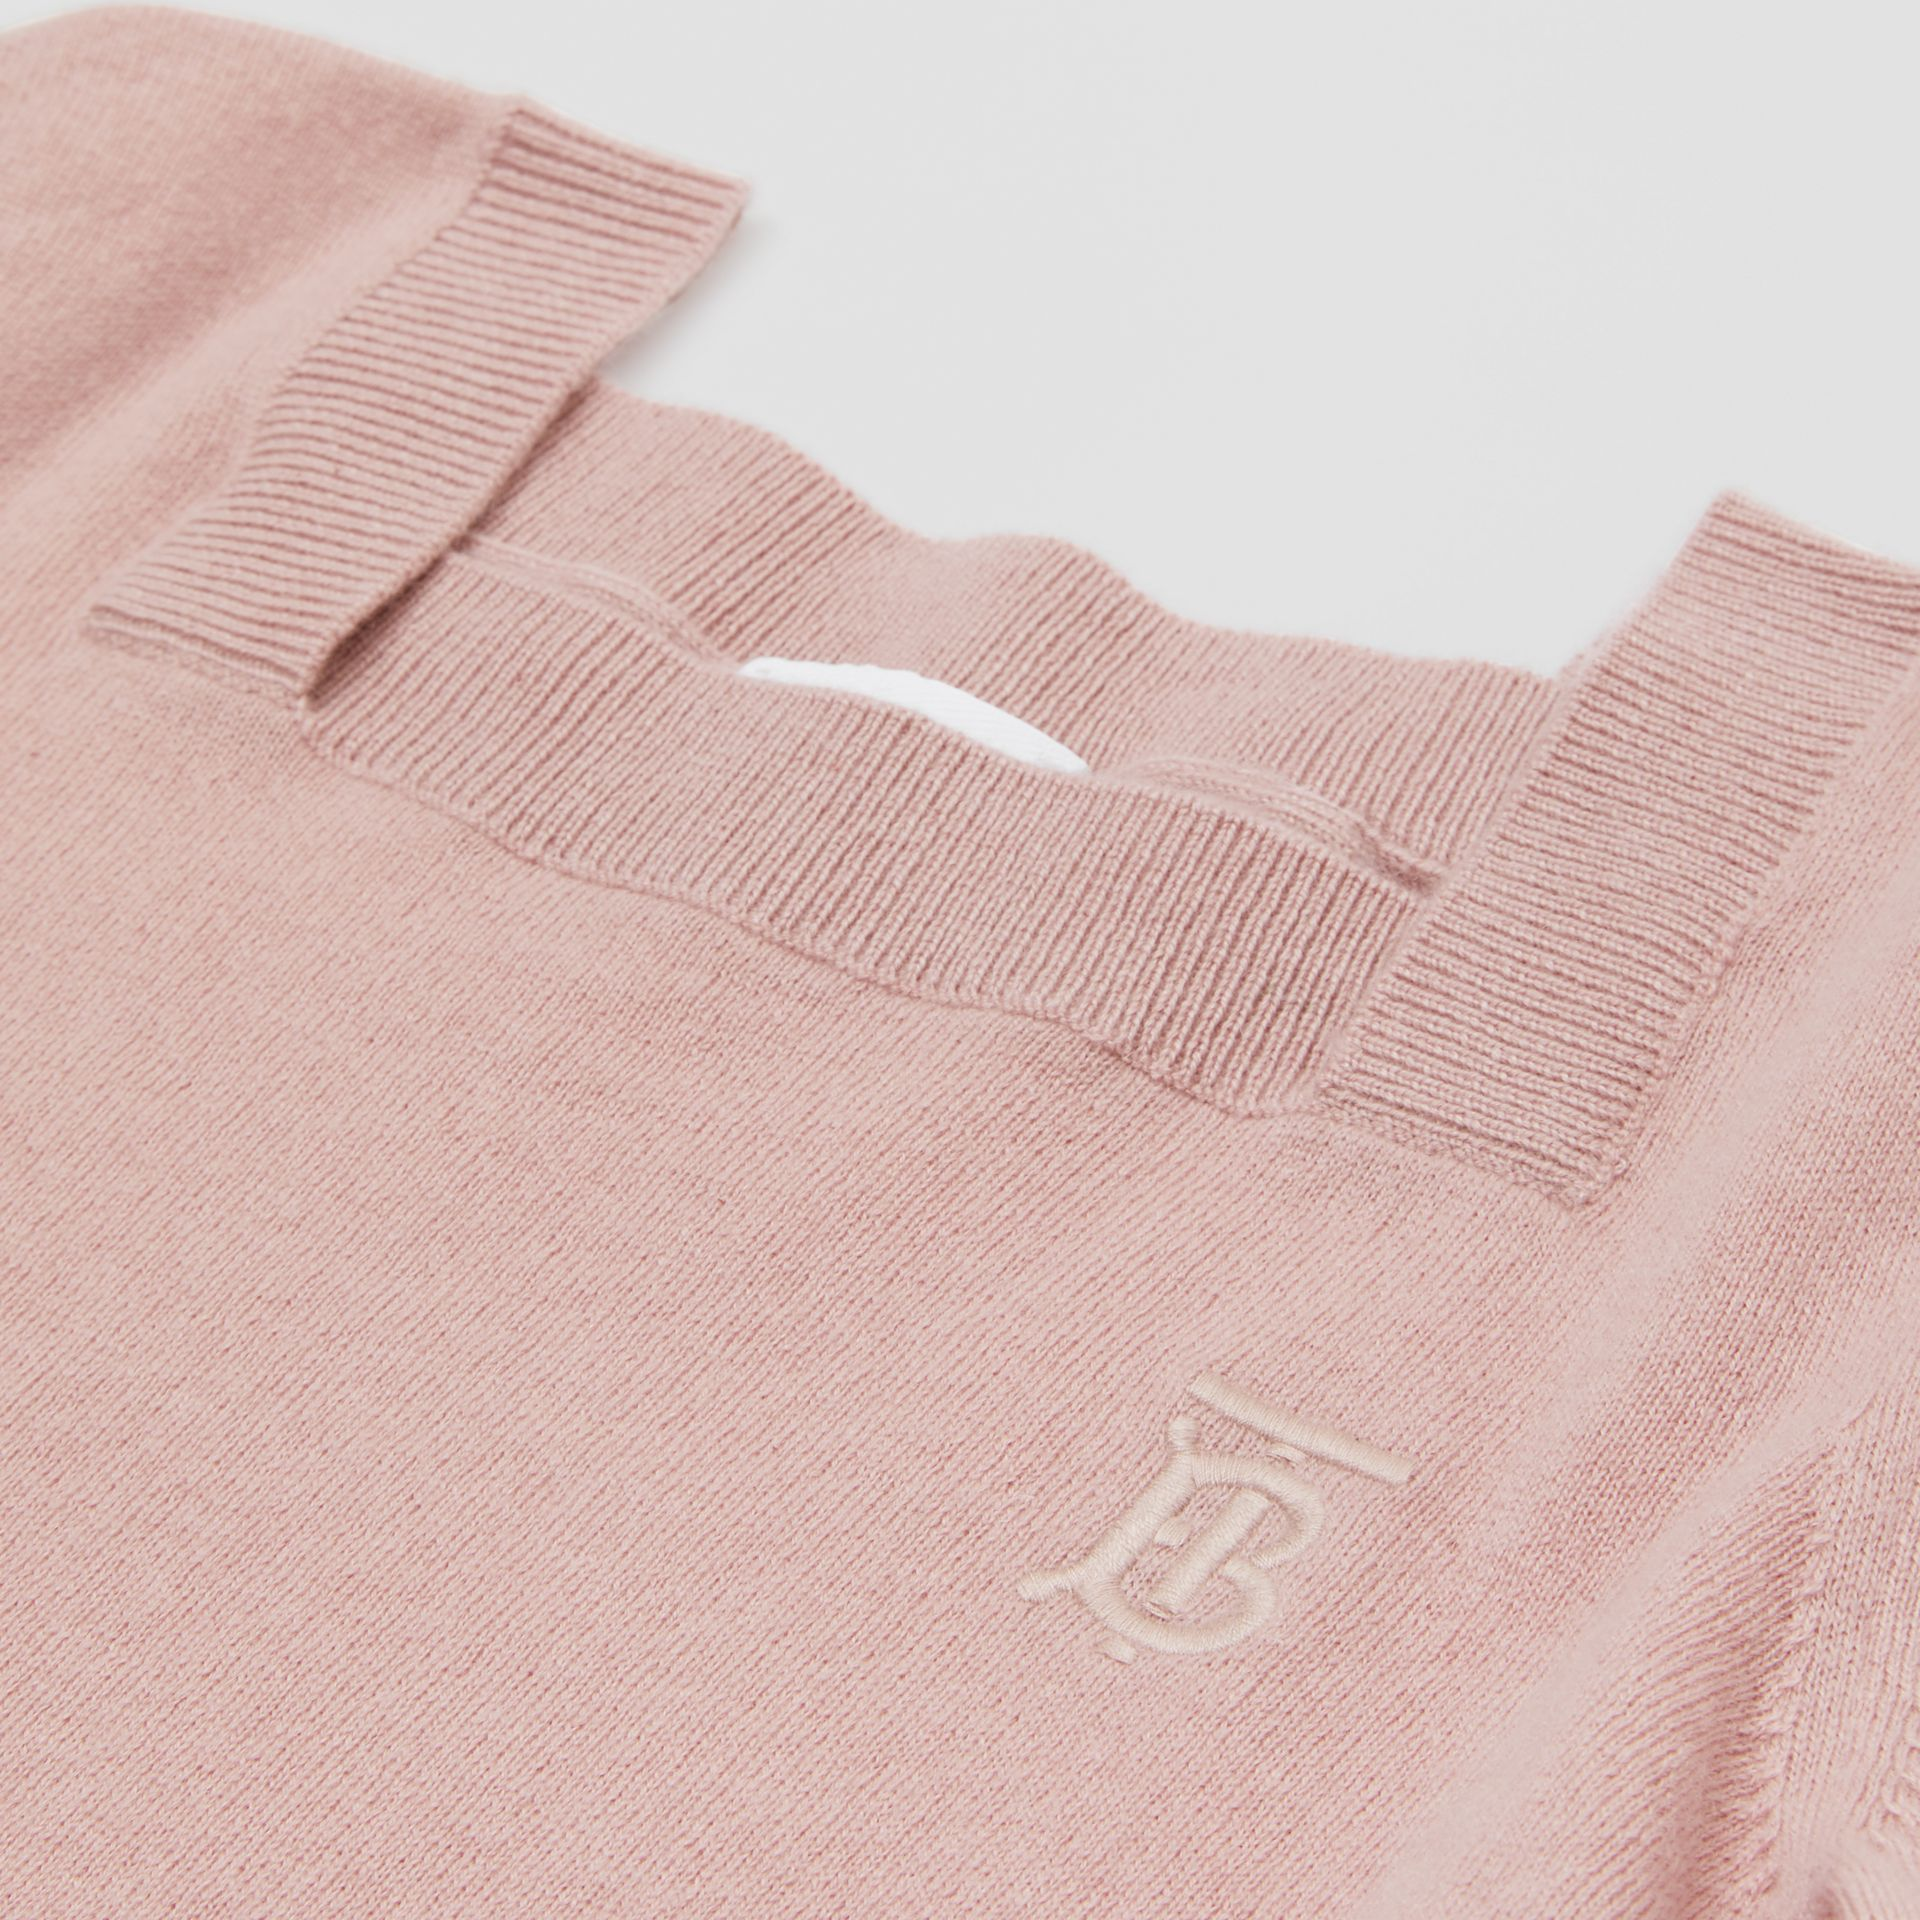 Monogram Motif Cashmere Sweater in Lavender Pink | Burberry United Kingdom - gallery image 1